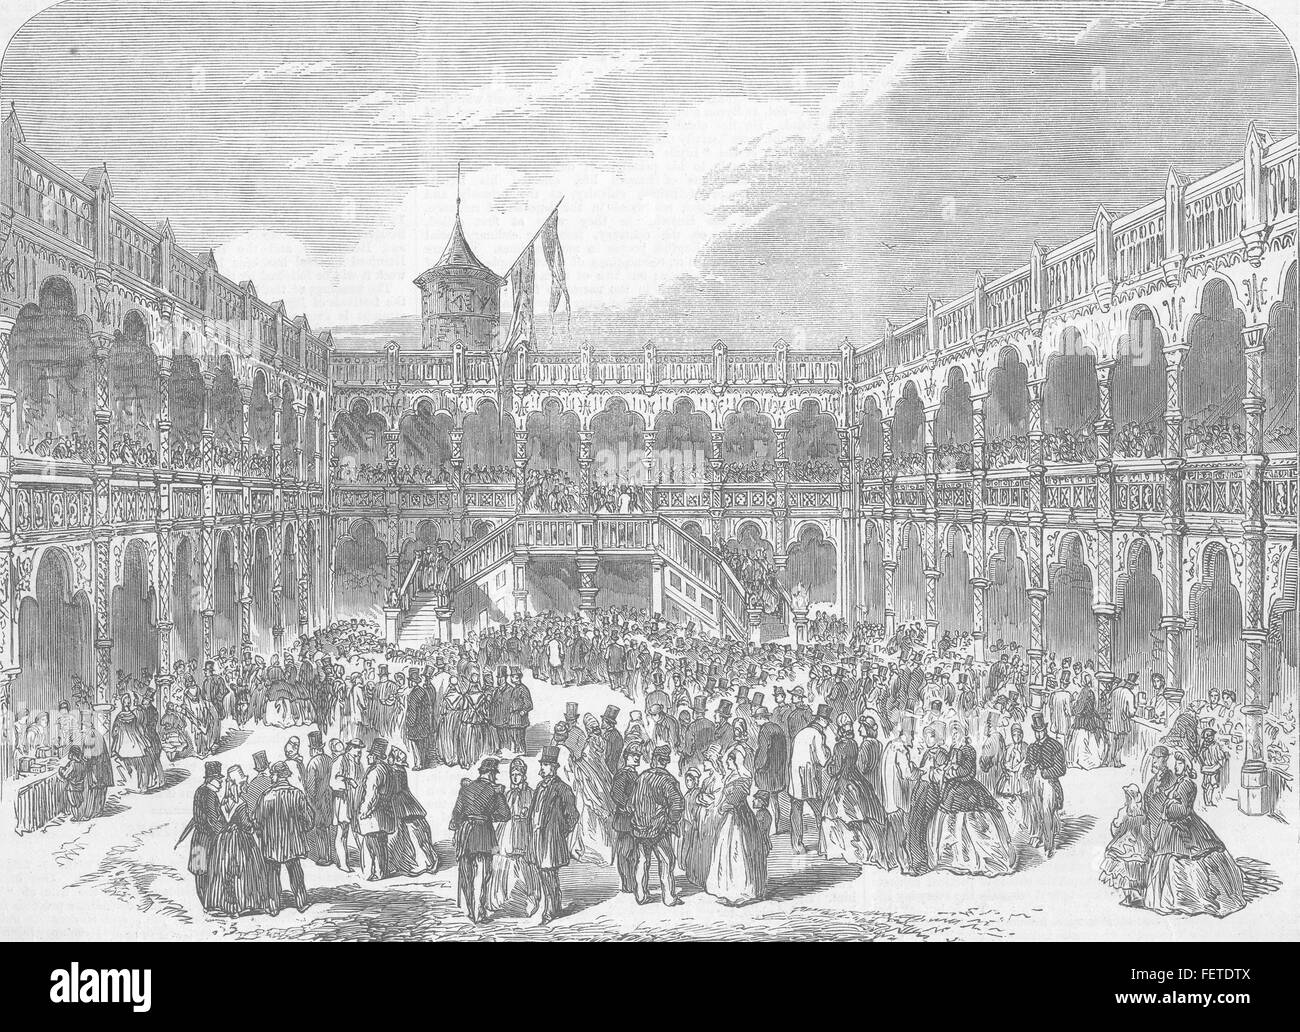 BELGIUM Temporary Restoration of the Old Bourse 1864. Illustrated London News - Stock Image